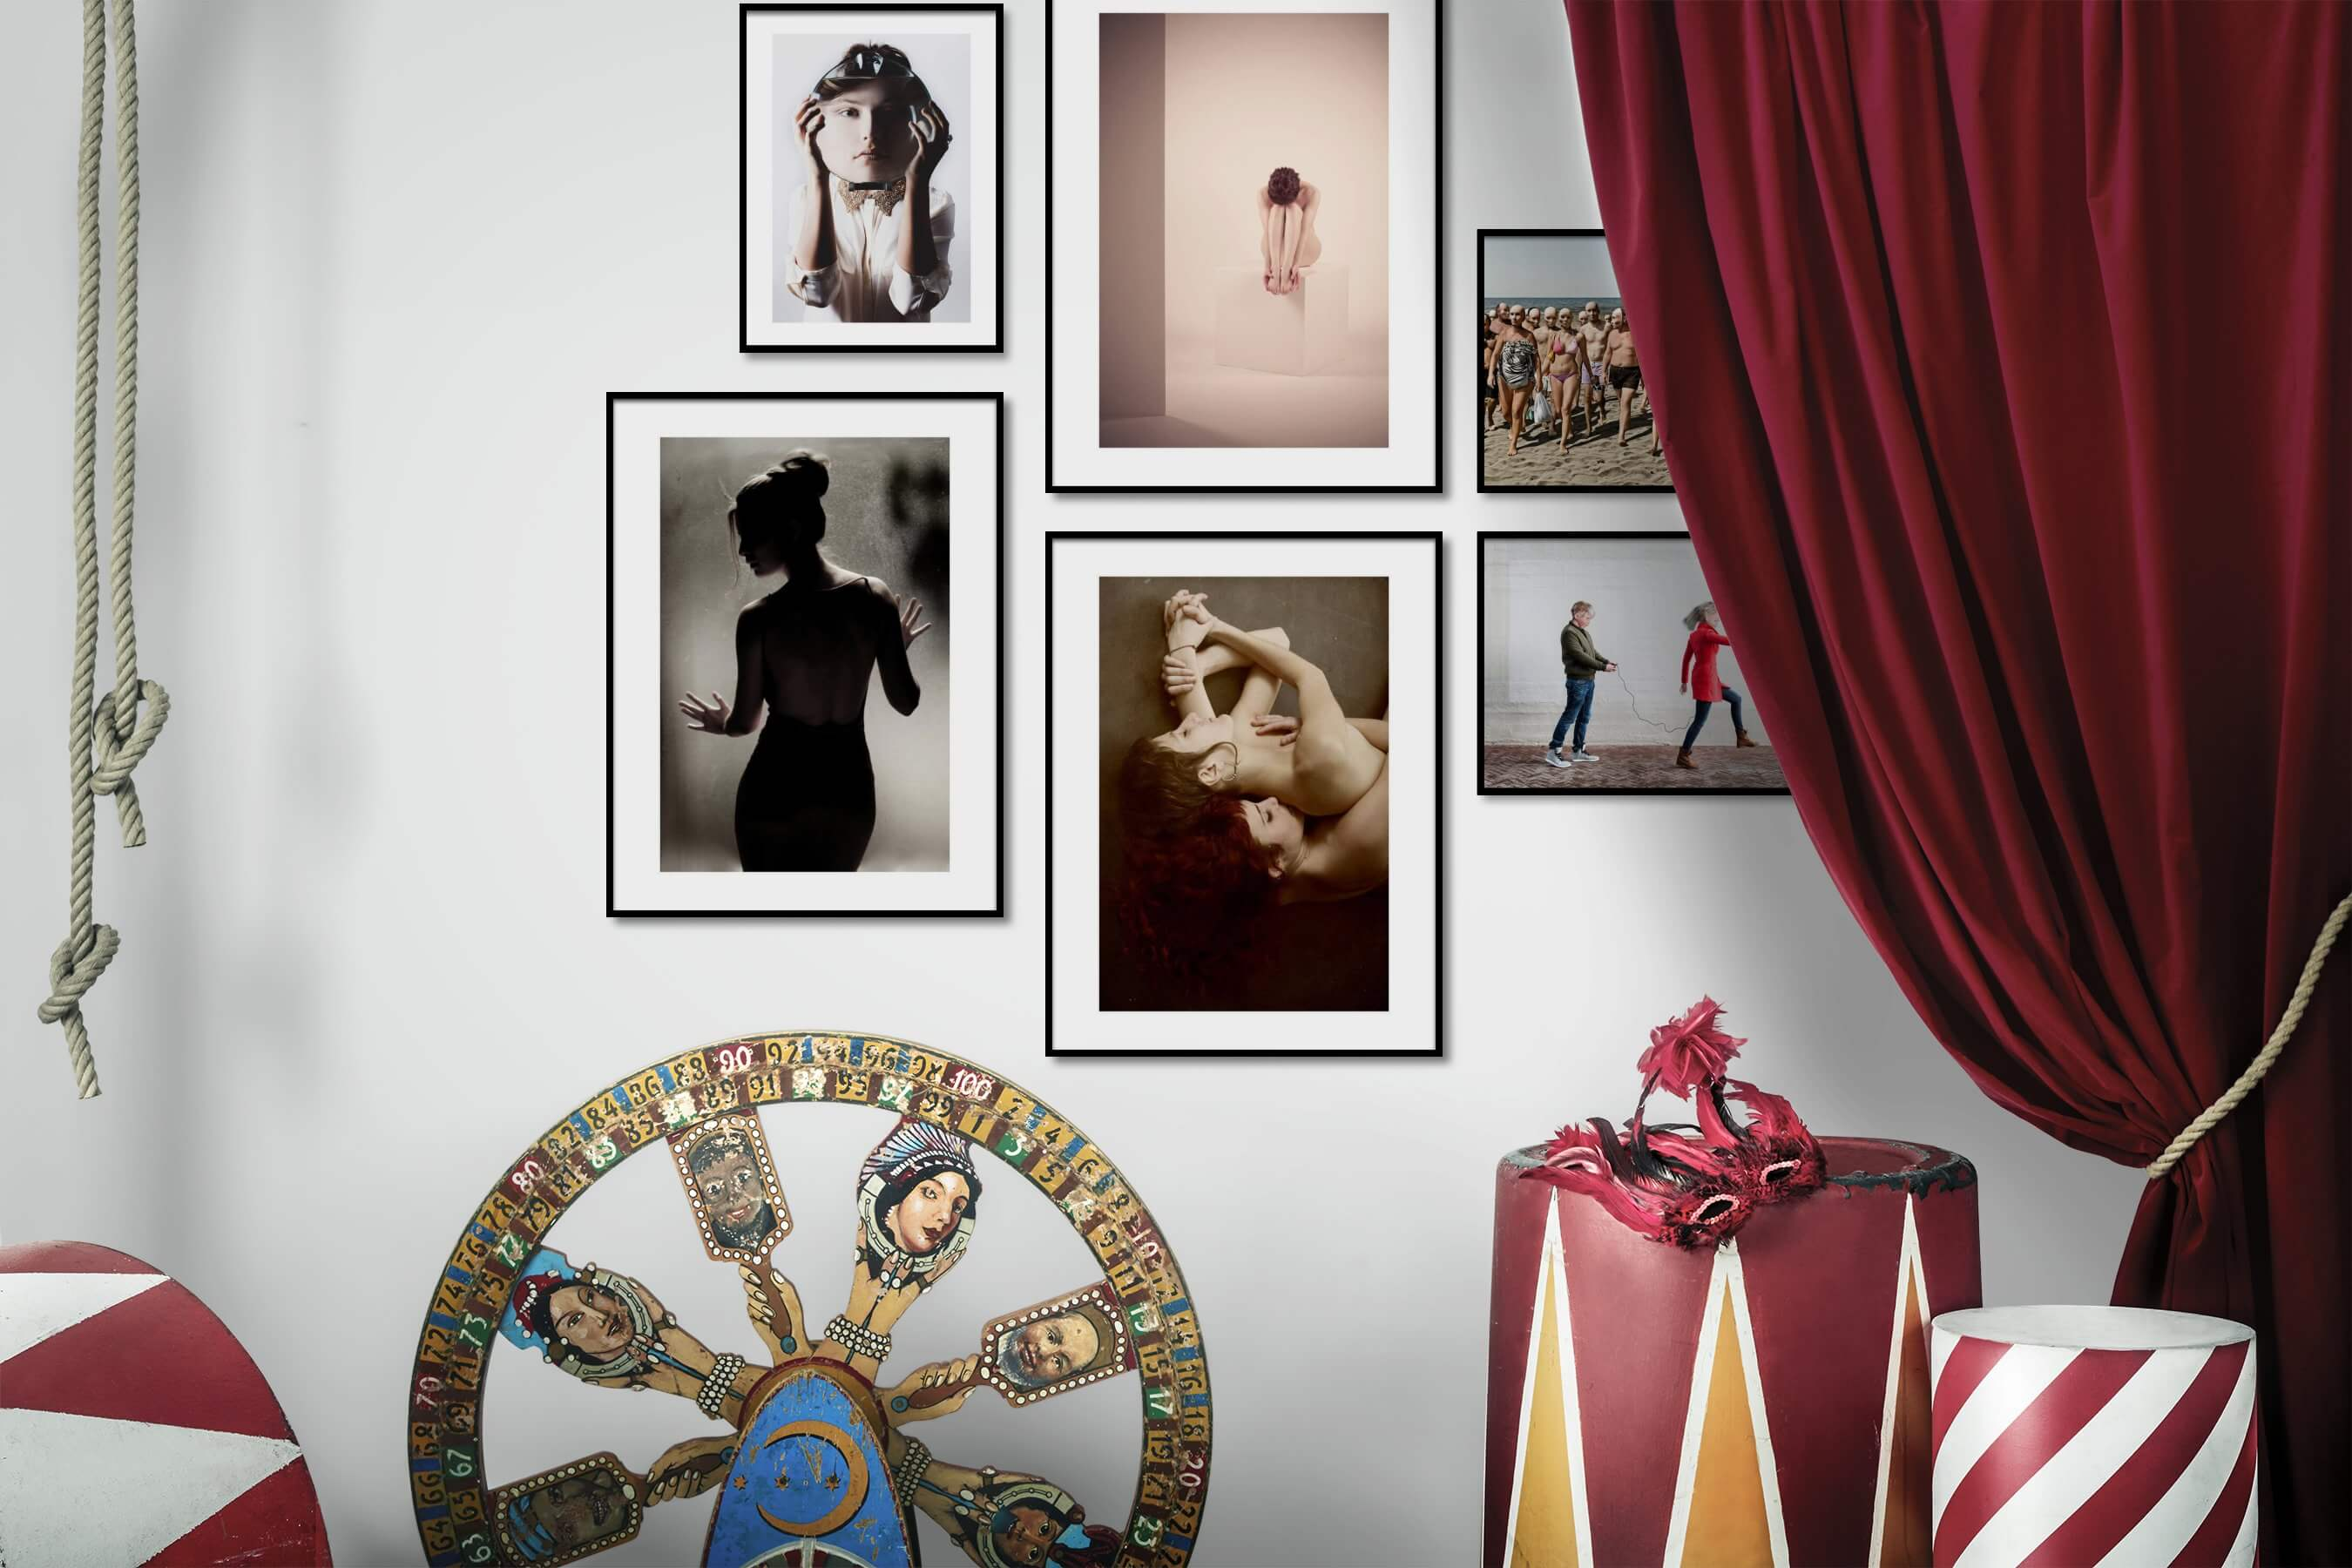 Gallery wall idea with six framed pictures arranged on a wall depicting Artsy, For the Minimalist, Fashion & Beauty, Beach & Water, and Vintage